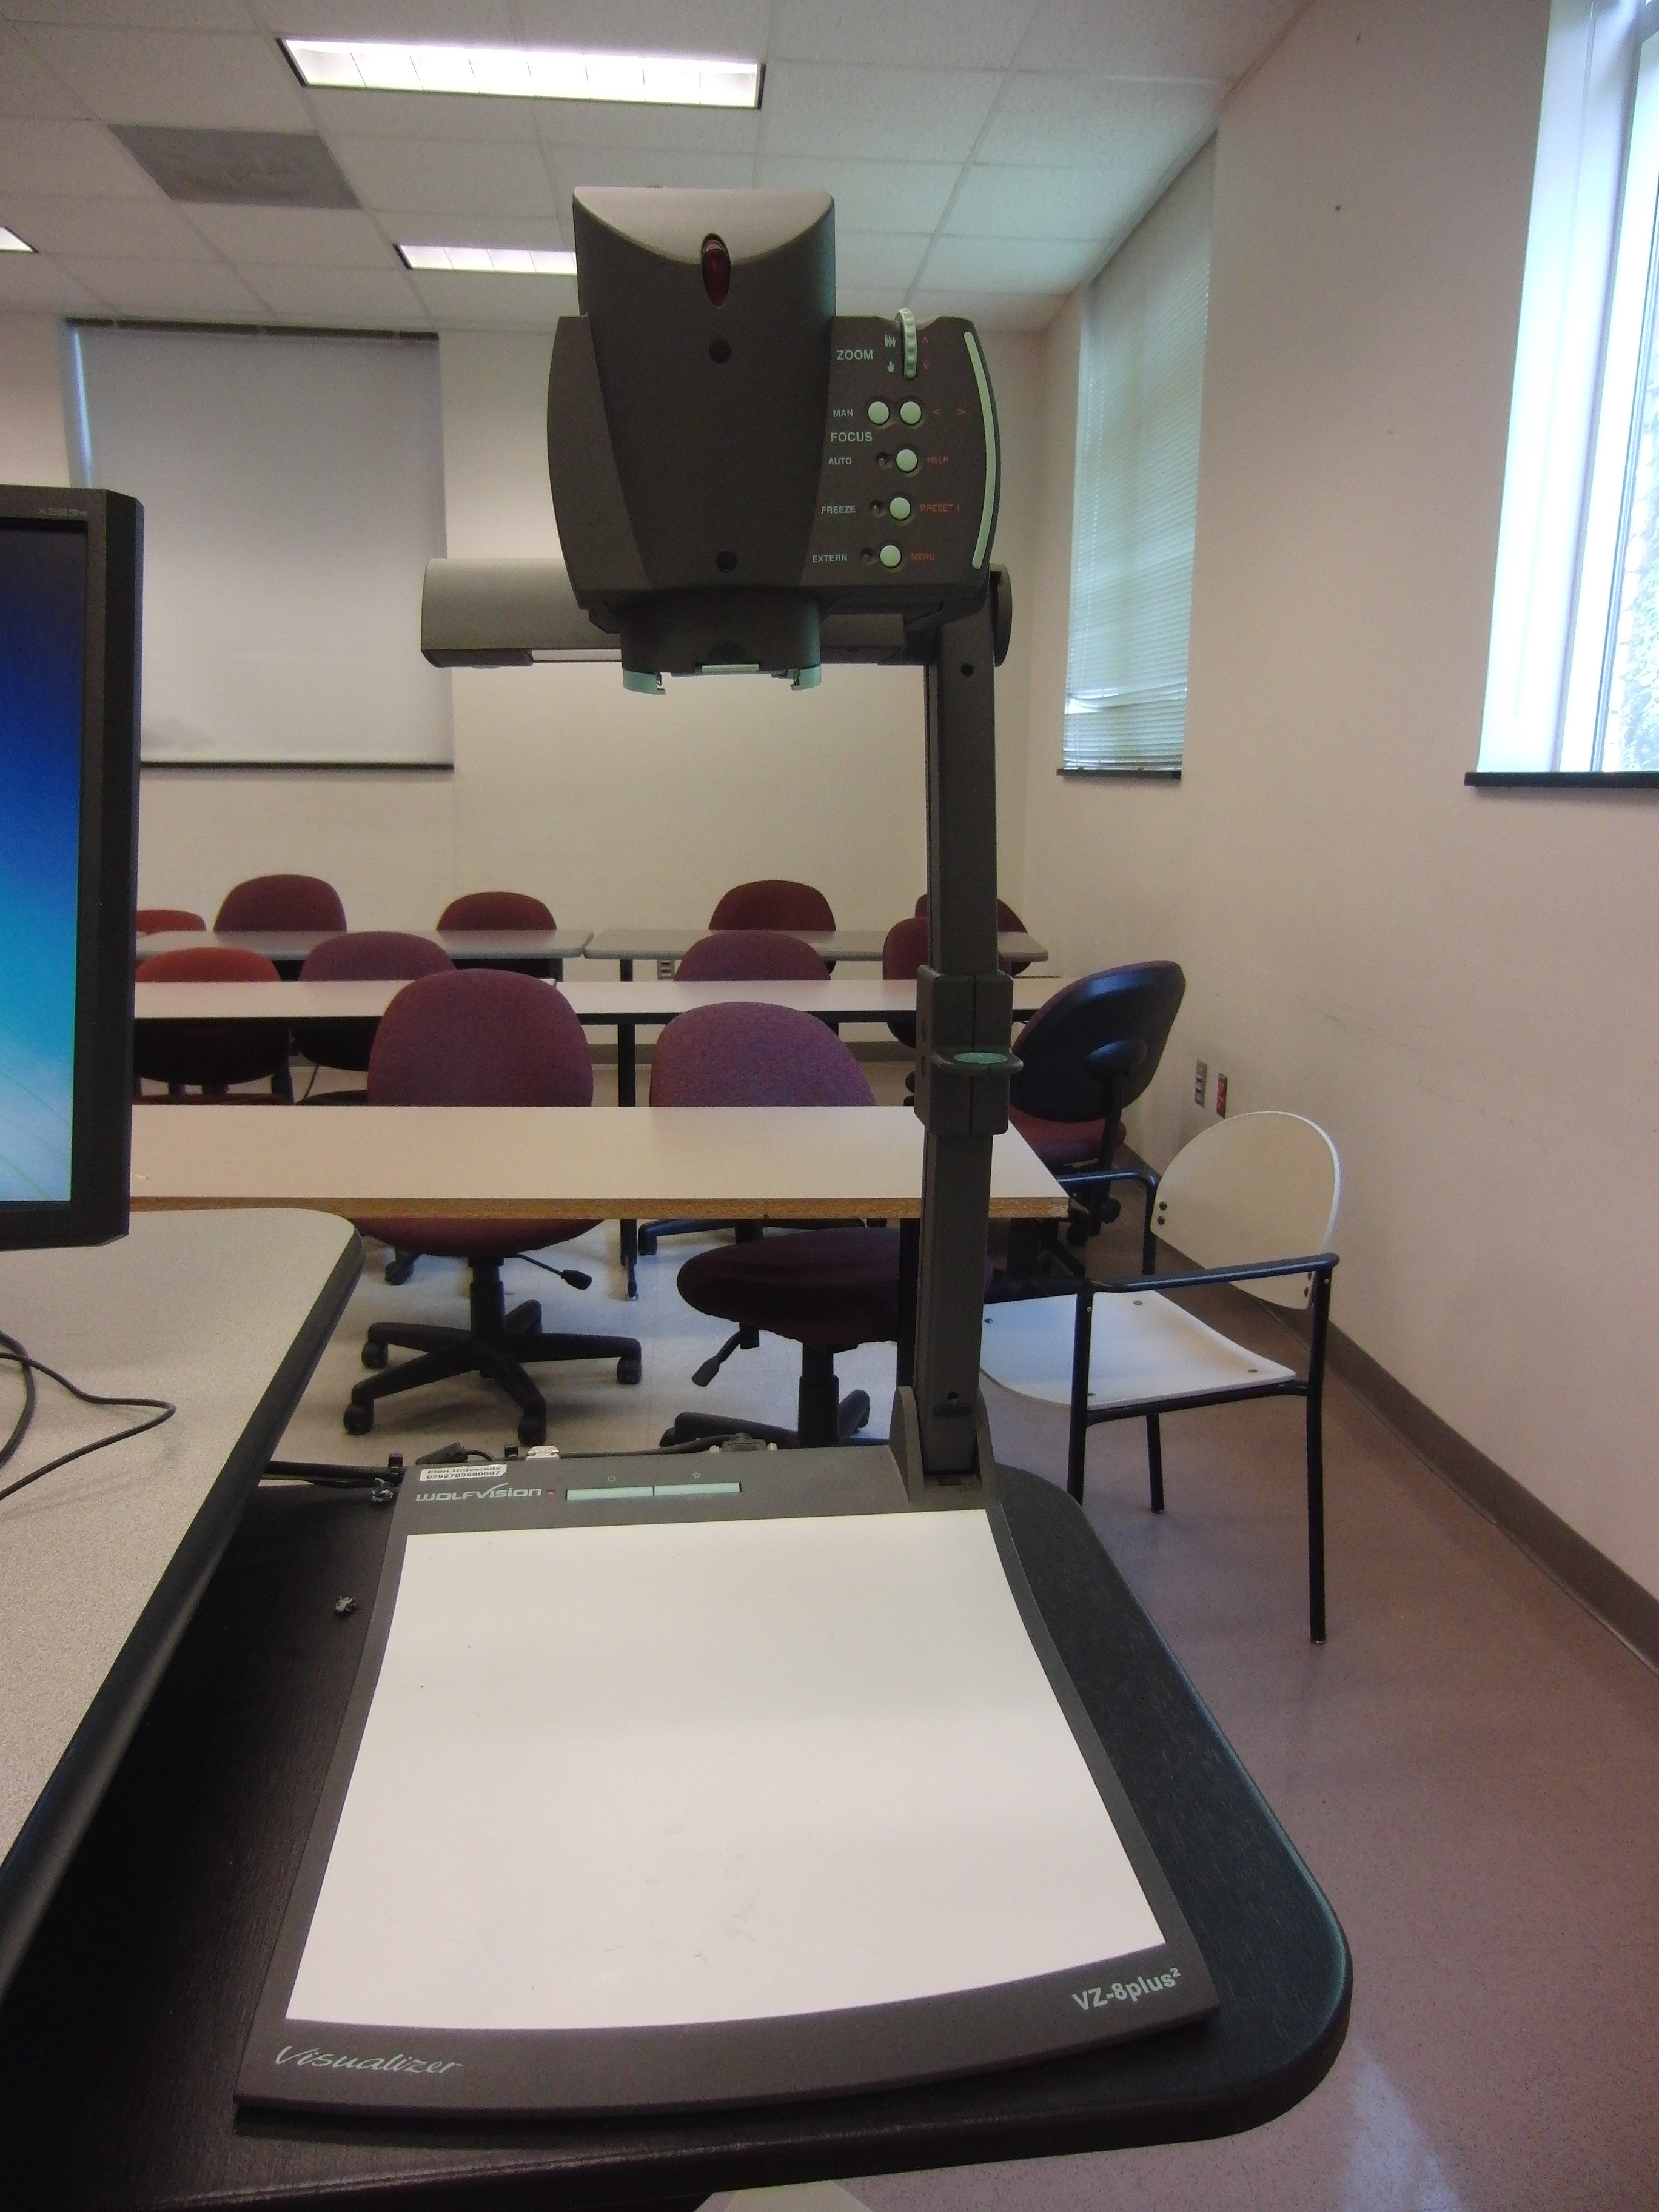 Photo of the document camera available at the instructor's station